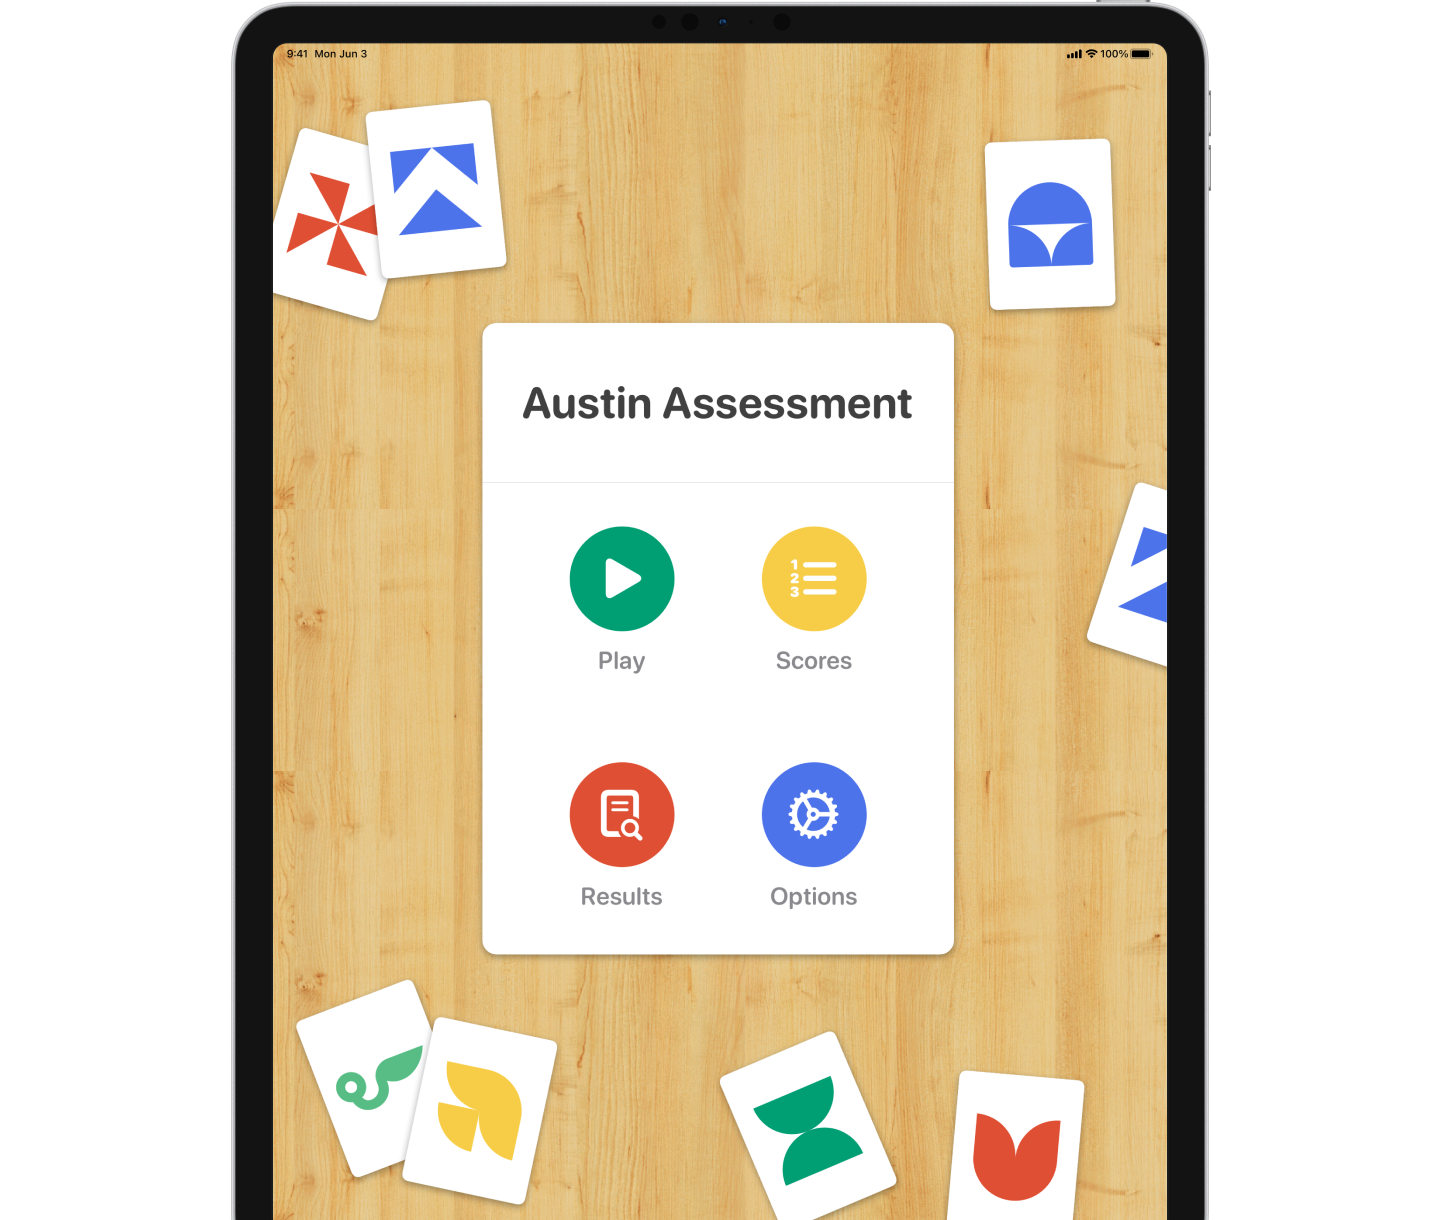 iPad showing the Austin Assessment game menu